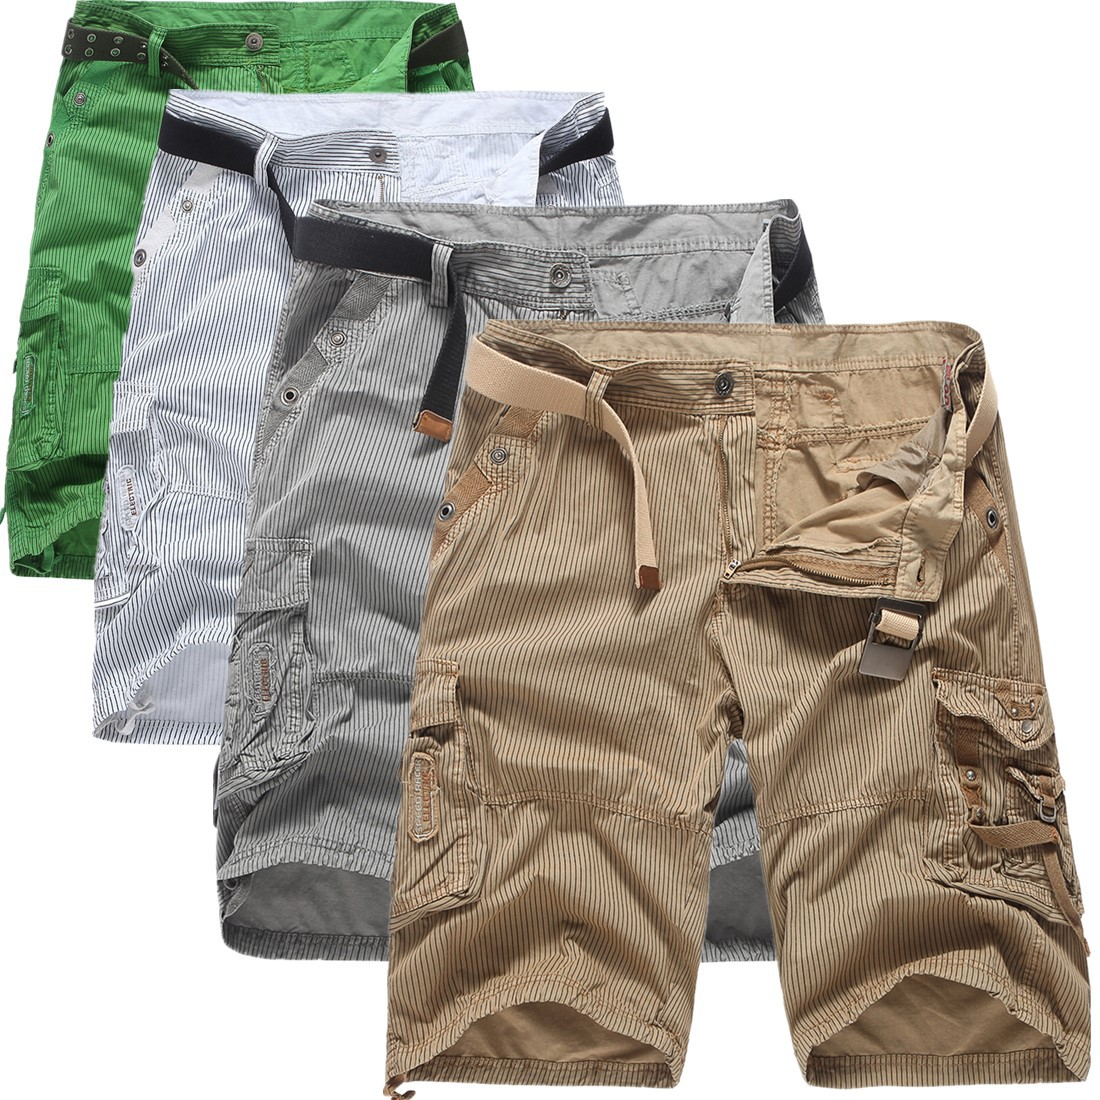 2018 New Style Summer Wear Bib Overall Shorts Europe And America Stripes Men Cotton Shorts Beach Shorts 4-Color